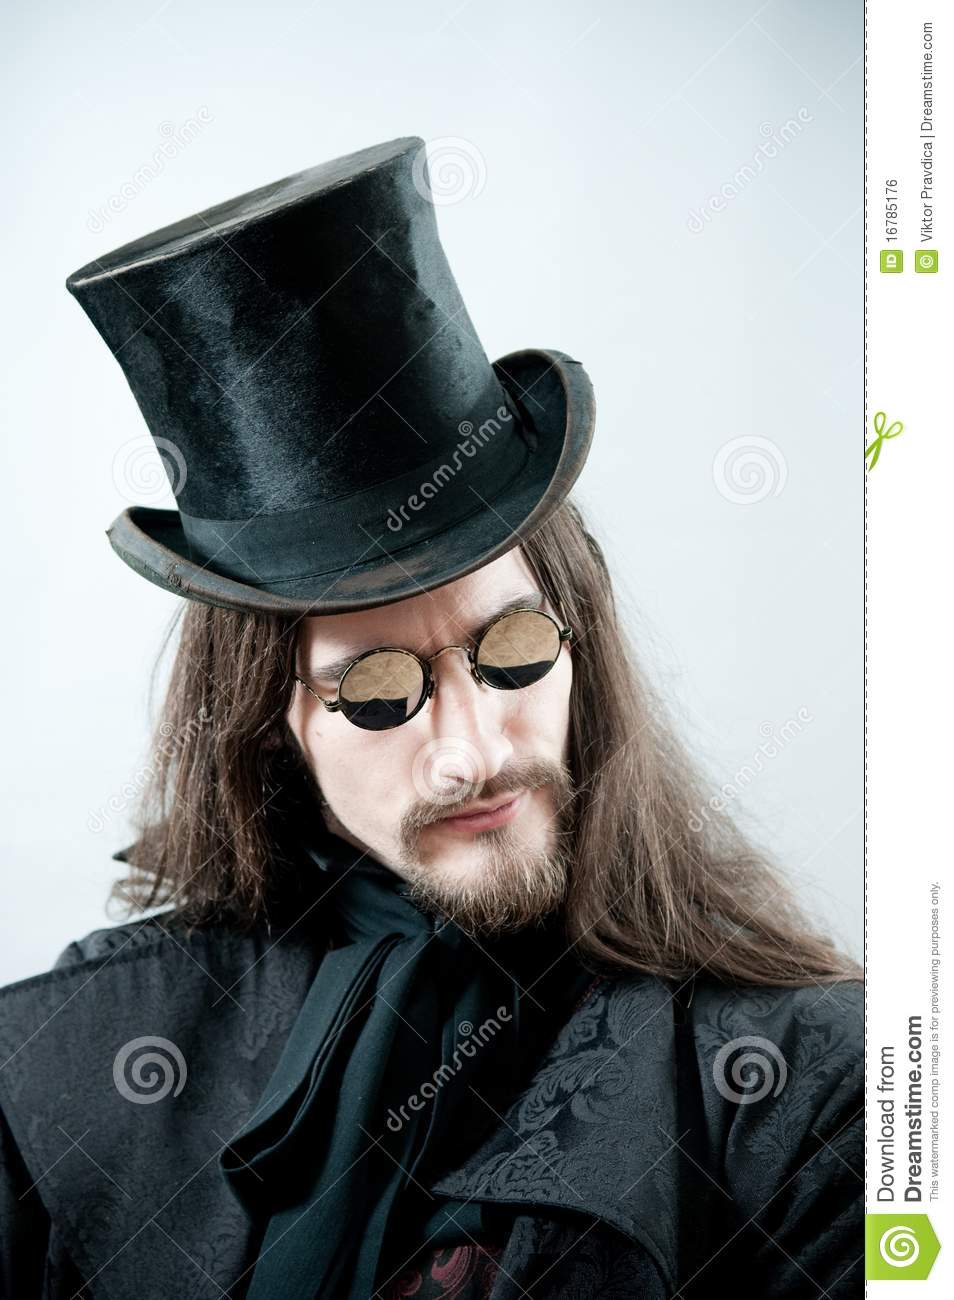 Steampunk portrait stock photo. Image of goggles, handsome ...